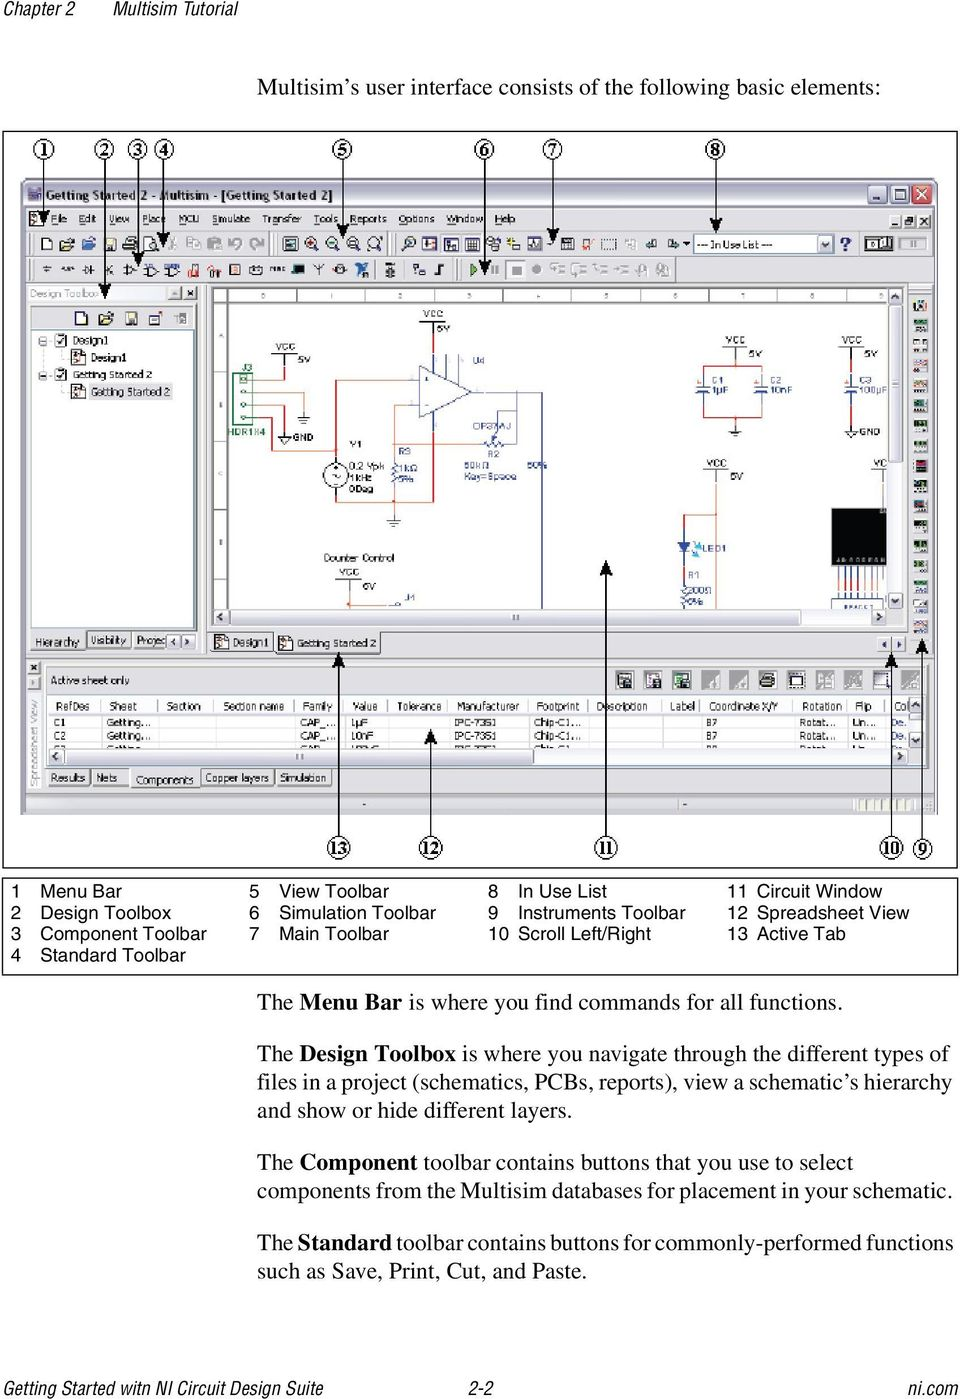 Ni Circuit Design Suite Pdf Dpdt Relay In Multisim The Toolbox Is Where You Navigate Through Different Types Of Files A Project